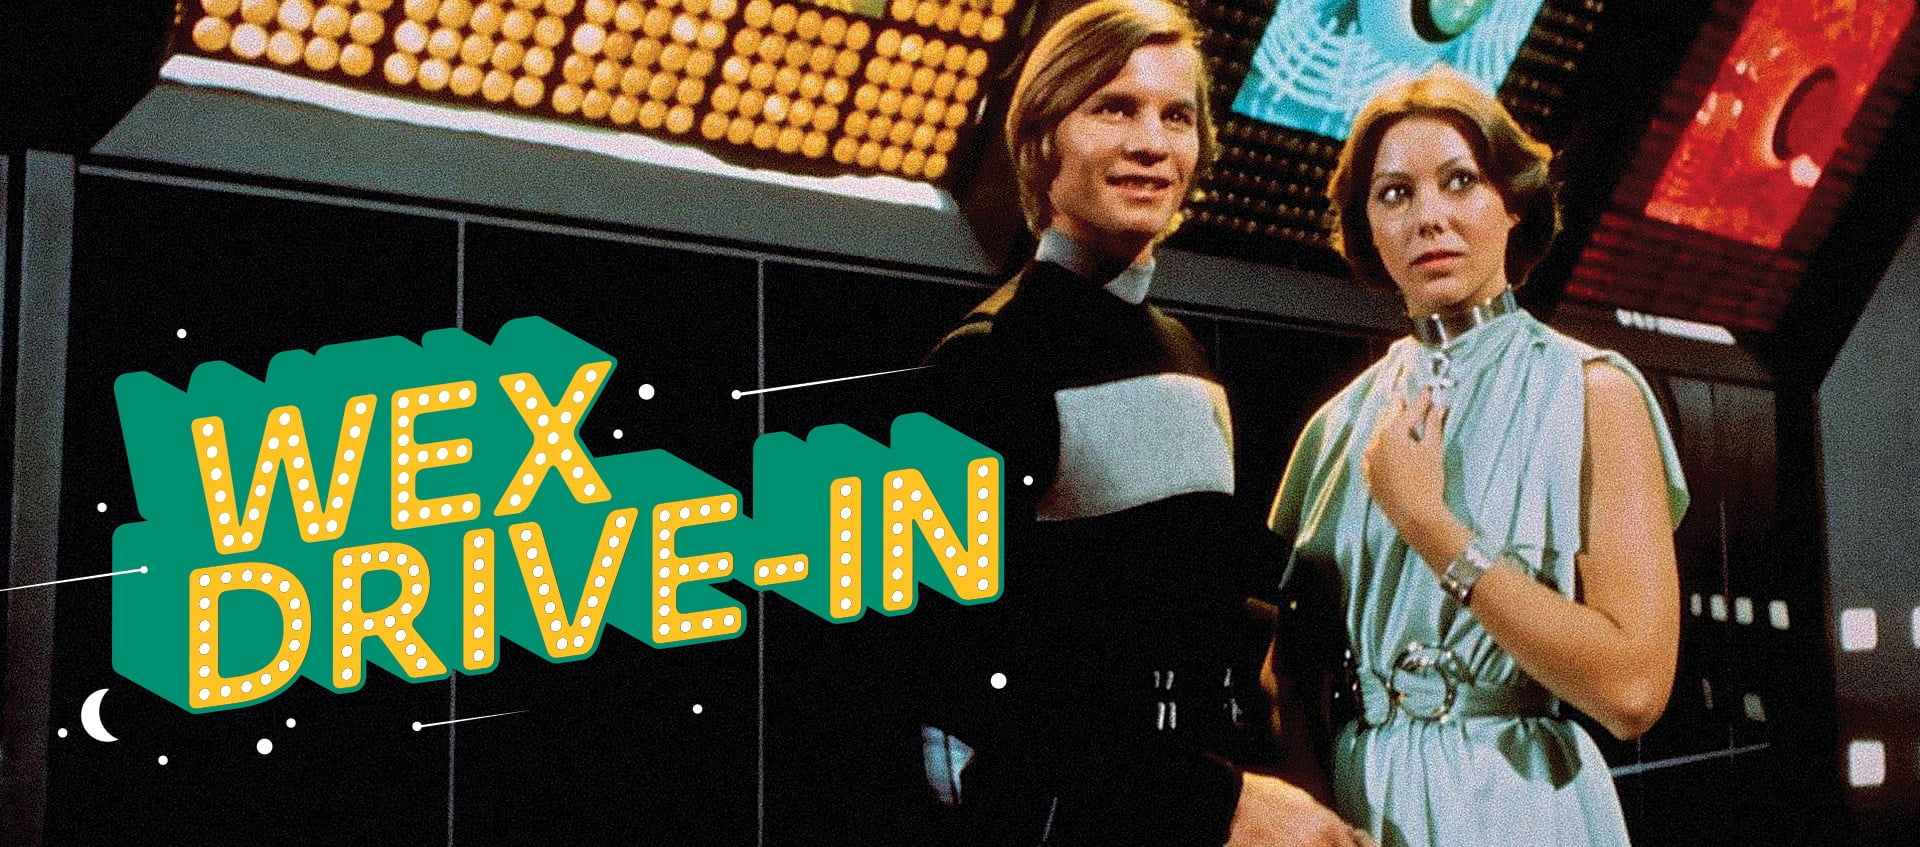 Columbus DJs Night Music will be at the WEX Drive In Movie. Logans Run.